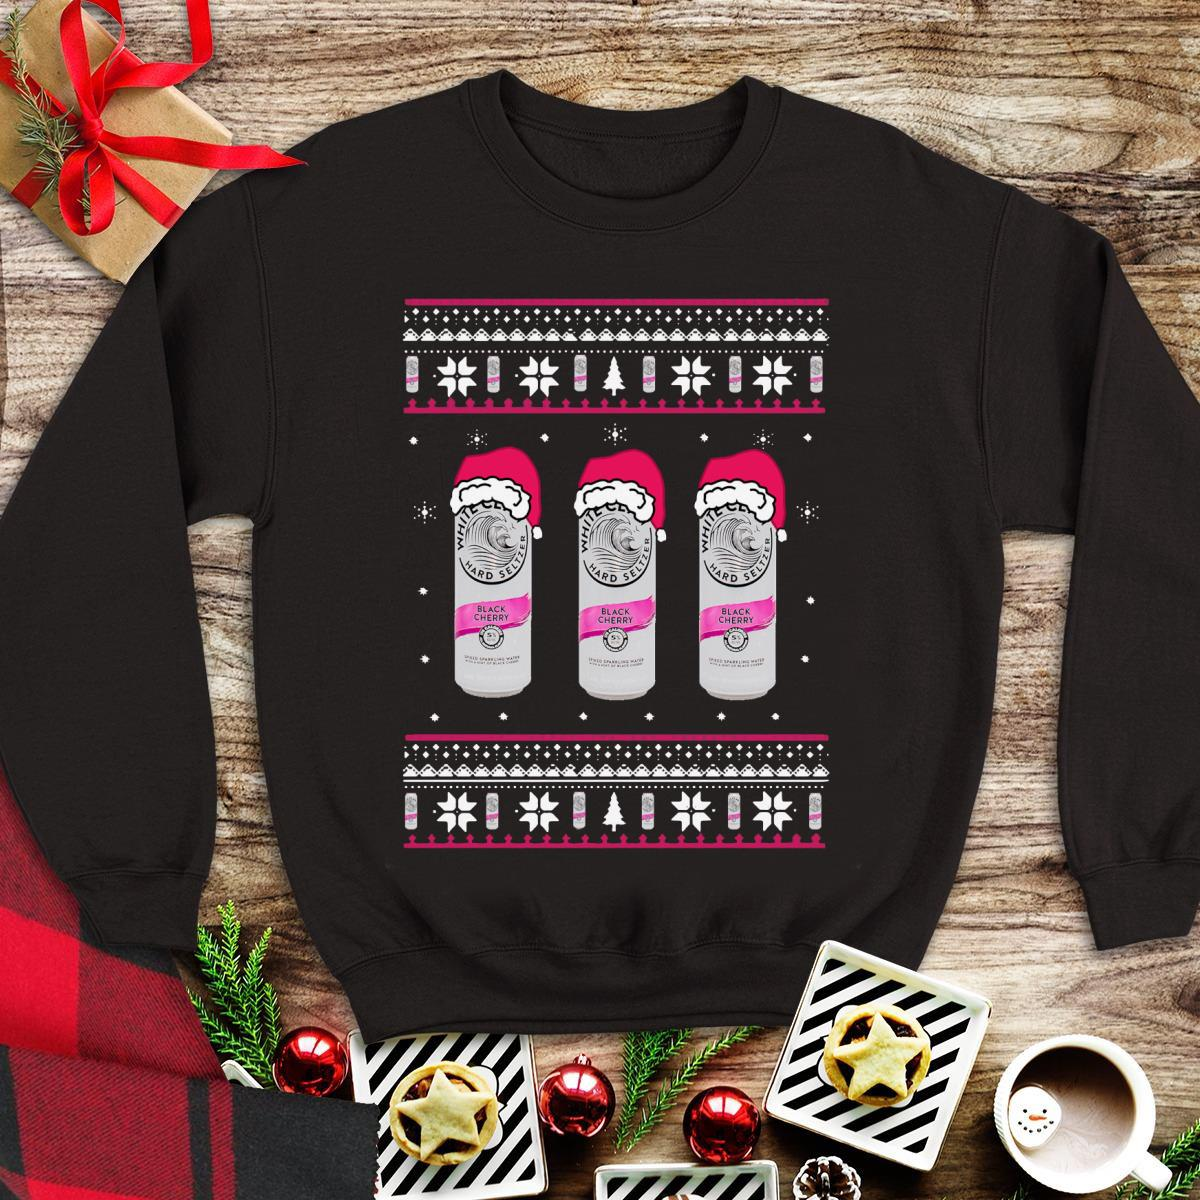 White Claw Black Cherry Ugly Christmas Sweater shirt